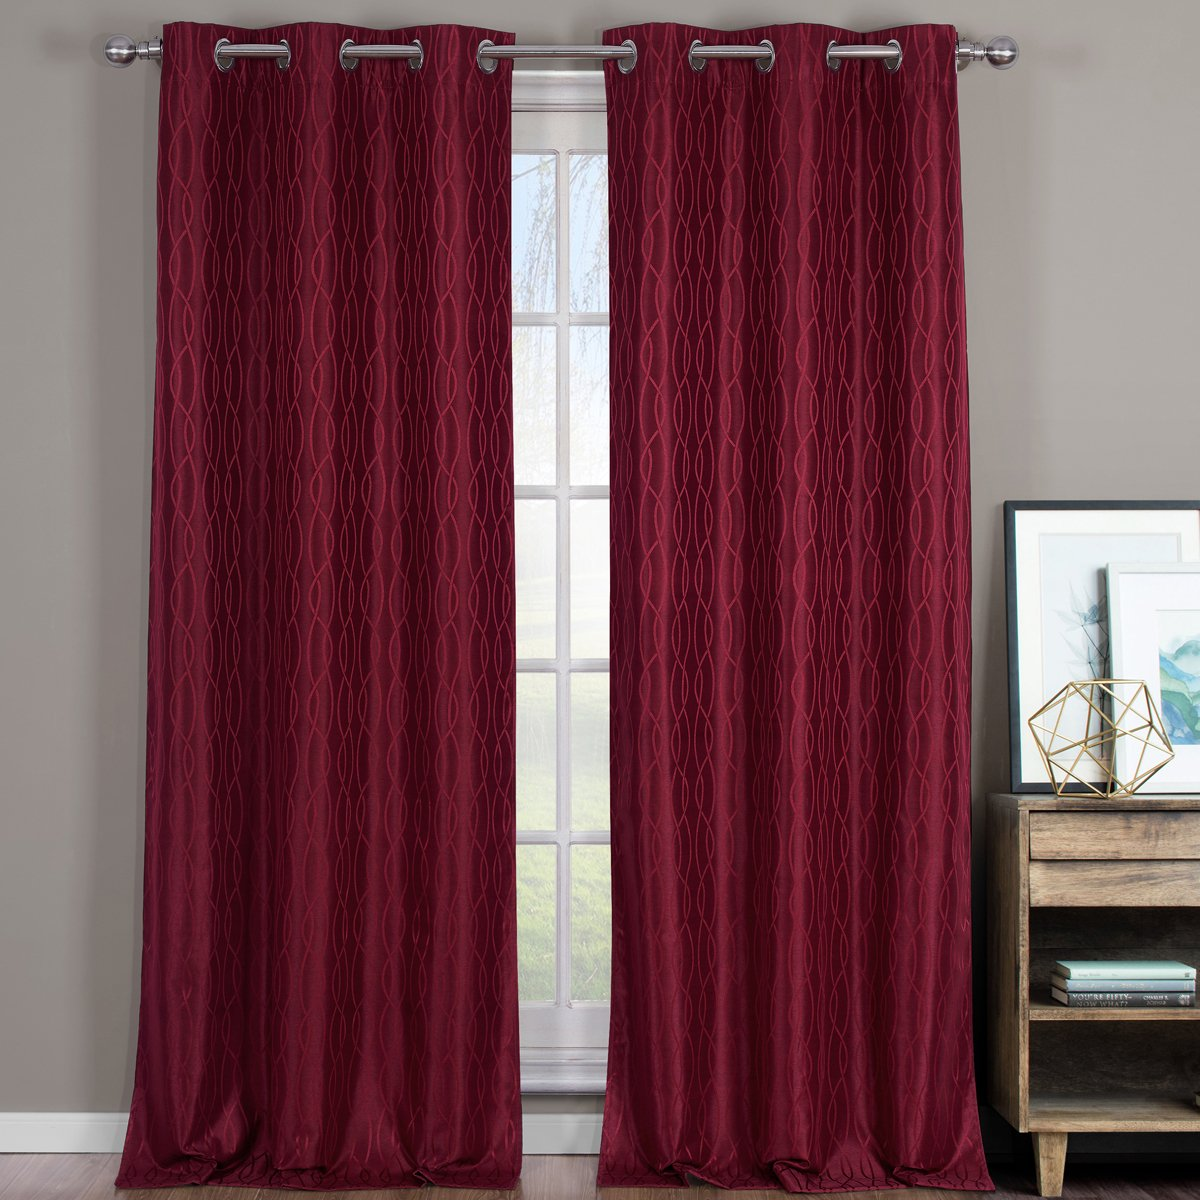 Voyage Jacquard Burgundy, Top Grommet Blackout Window Curtain Panels, Pair / Set of 2 Panels, 38x63 inches Each, by Royal Hotel